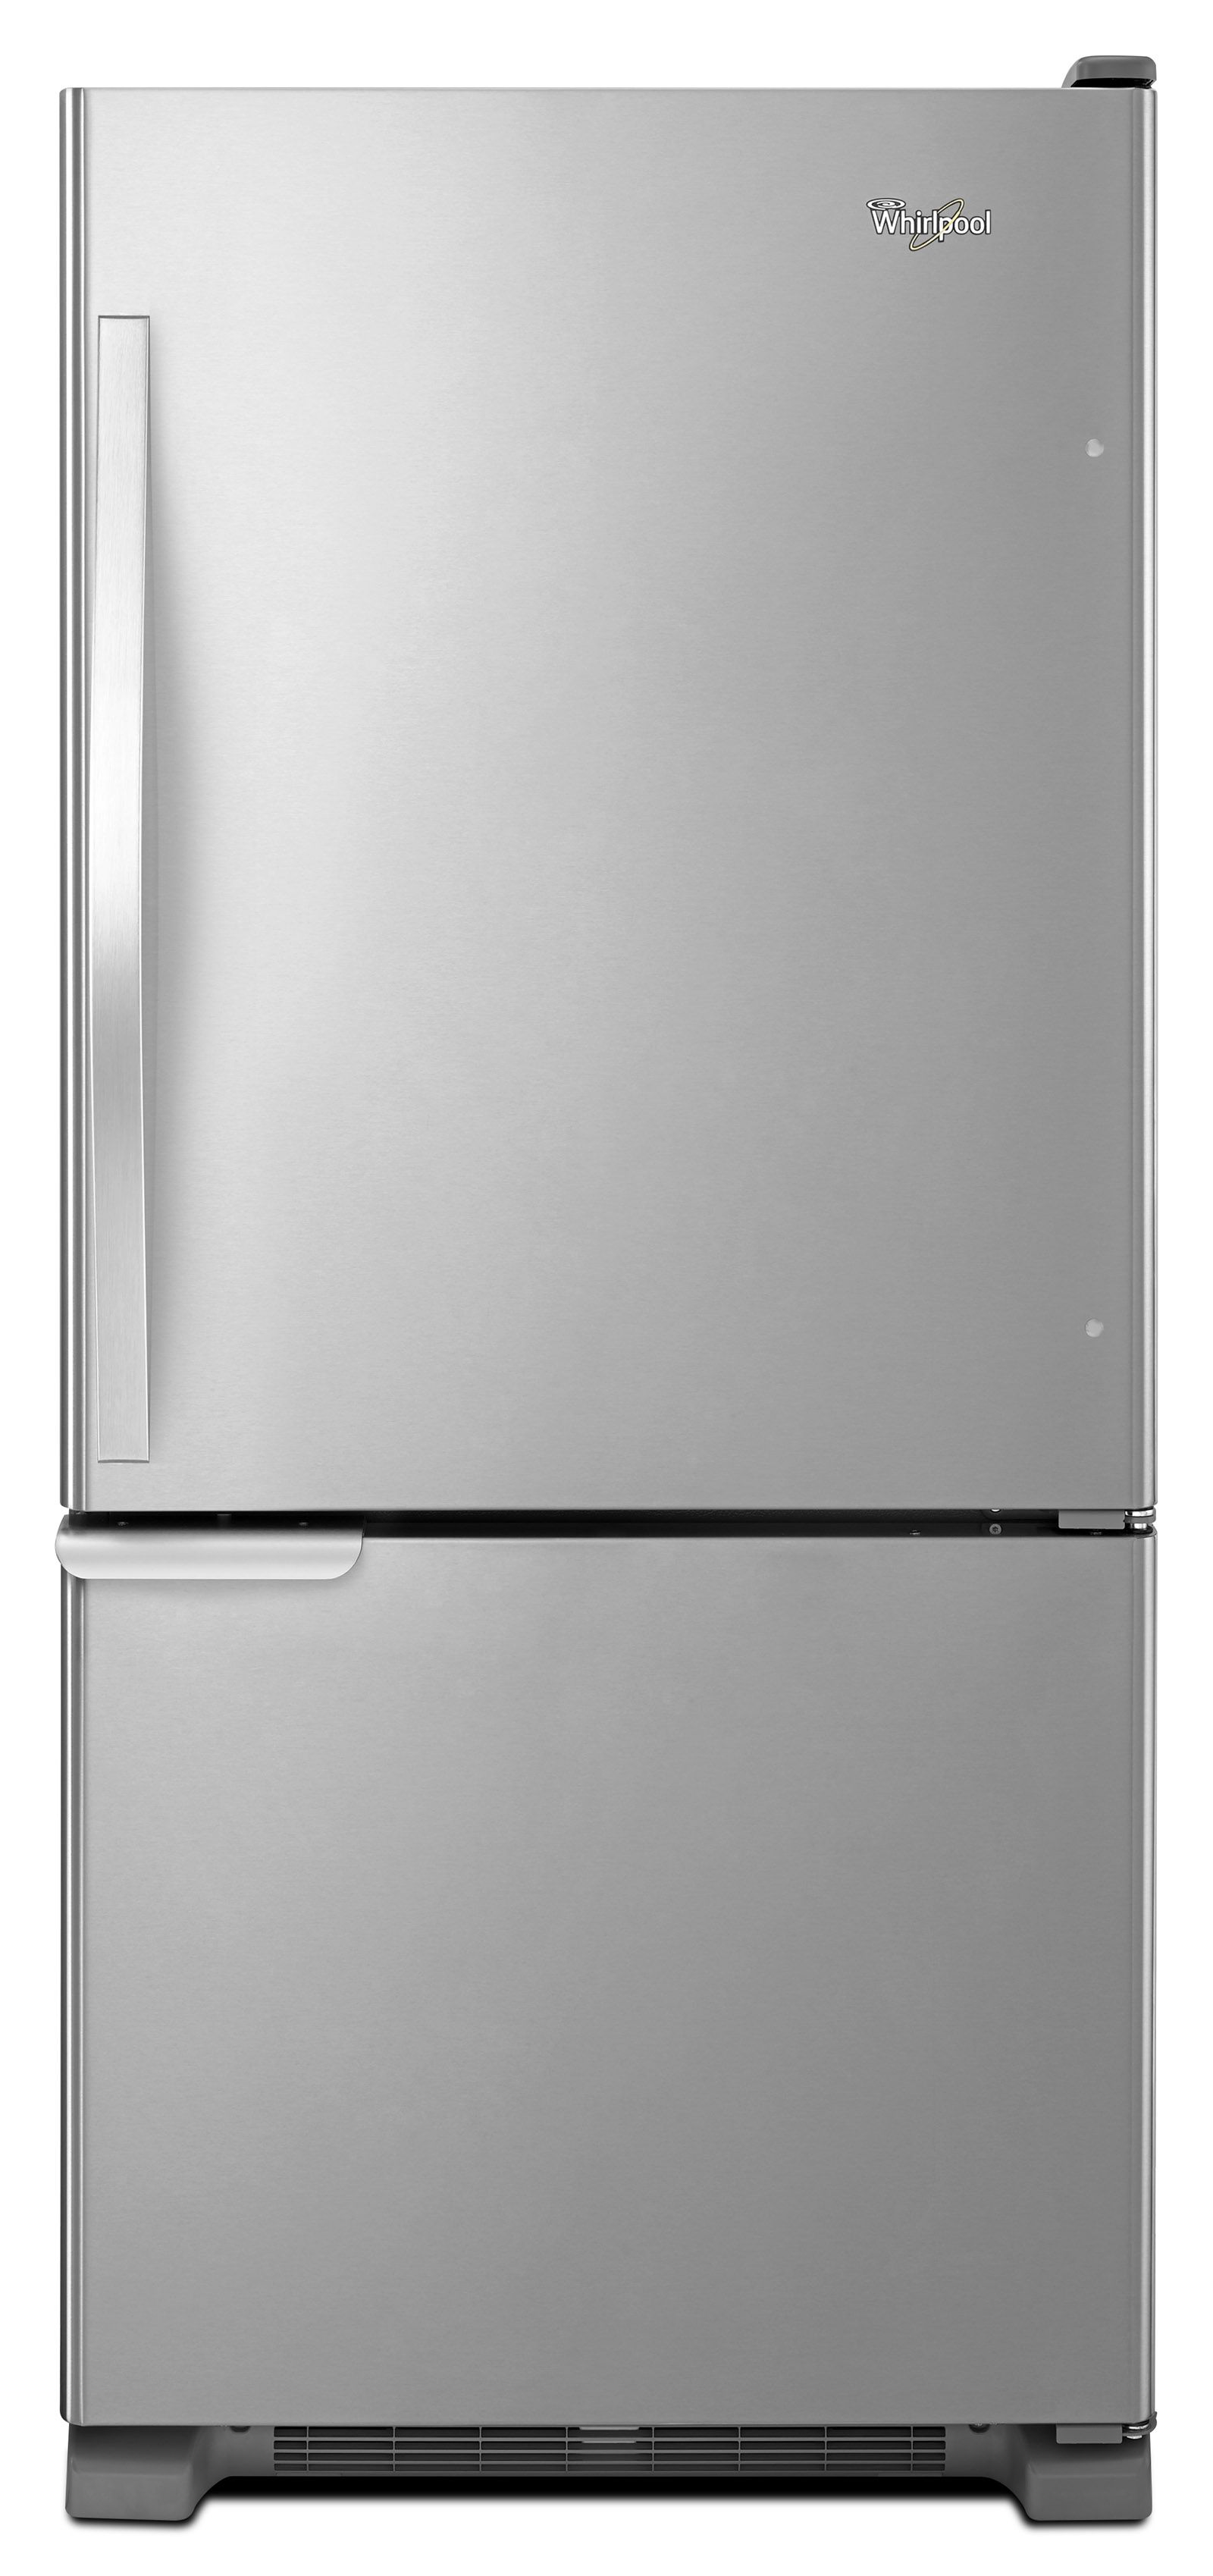 Single Door Bottom Freezer Refrigerator W/ Adaptive Defrost   Efficient And  Stylish